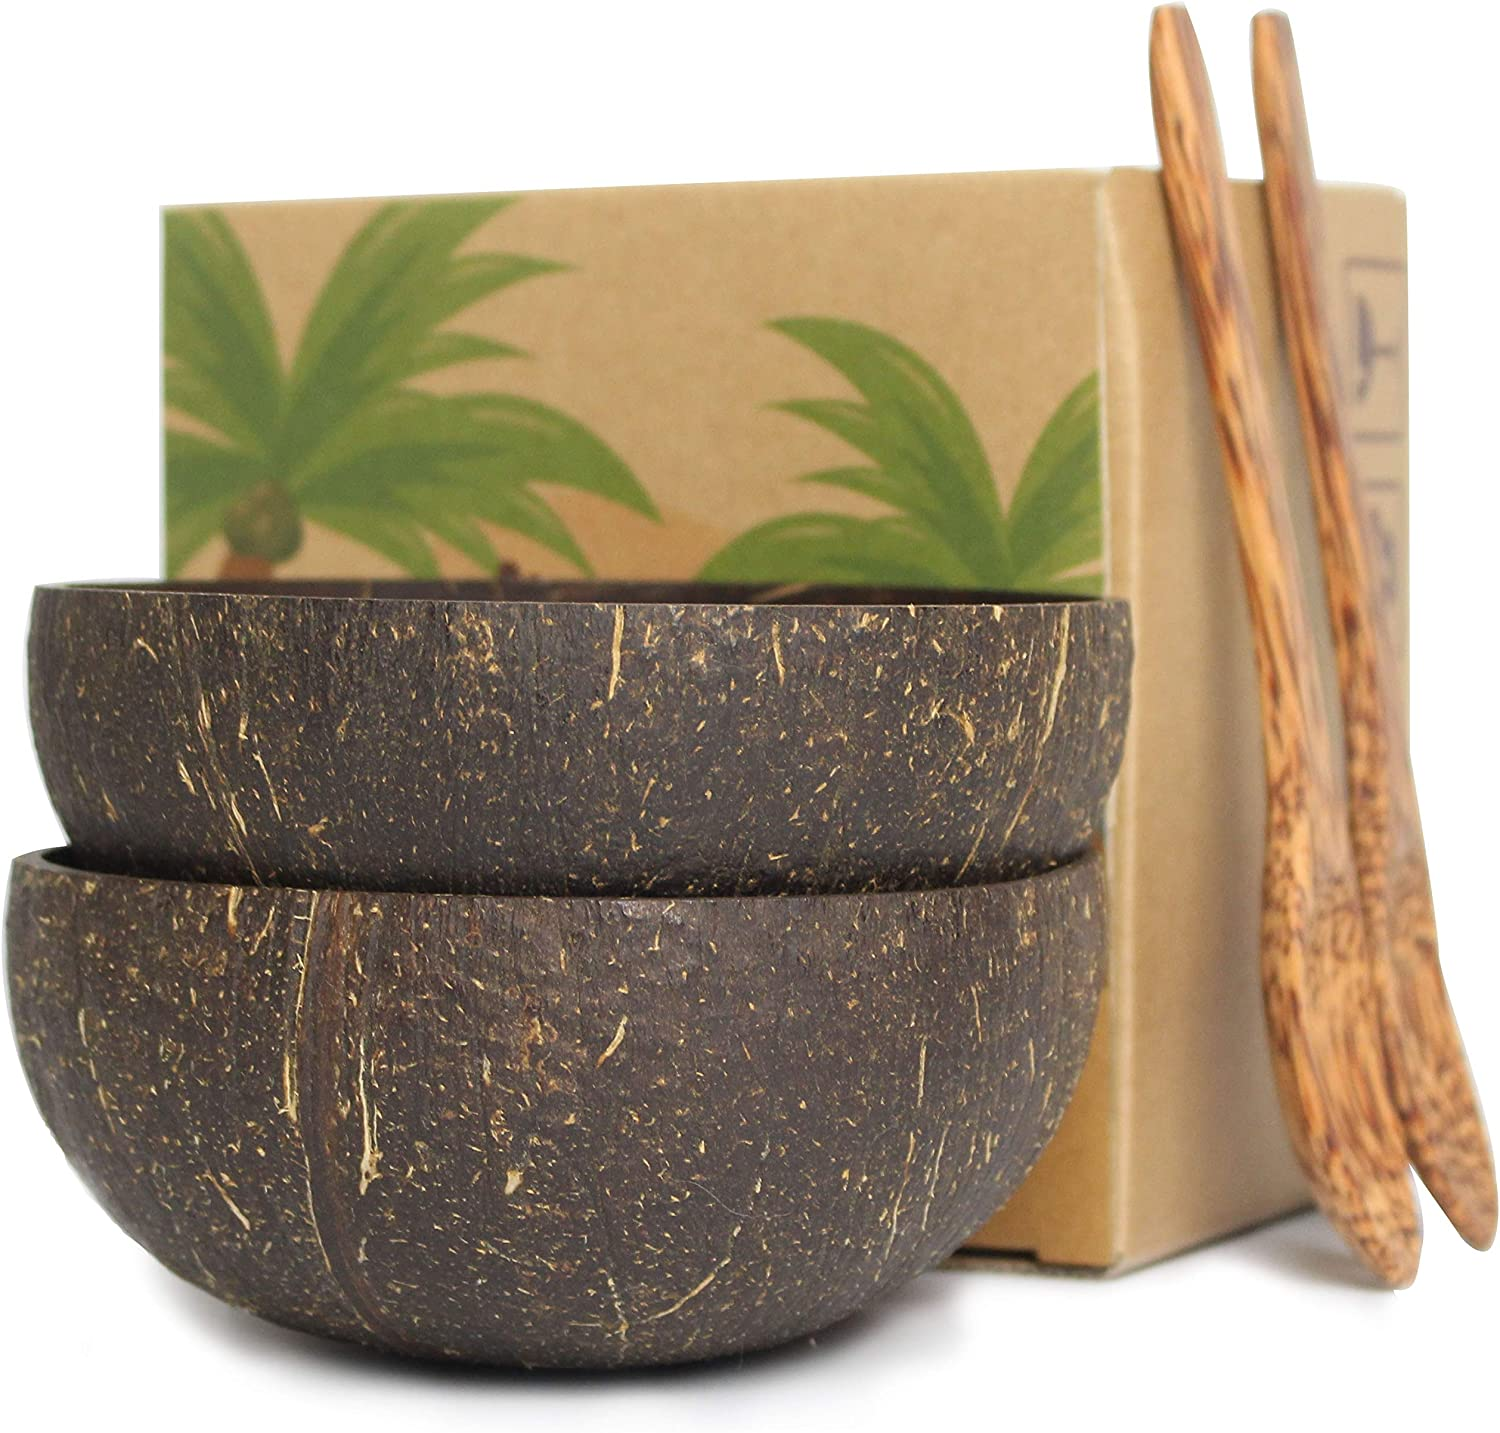 Handcrafted coconut bowls and spoons for acai bowls, buddha bowls, and desserts or cereal.